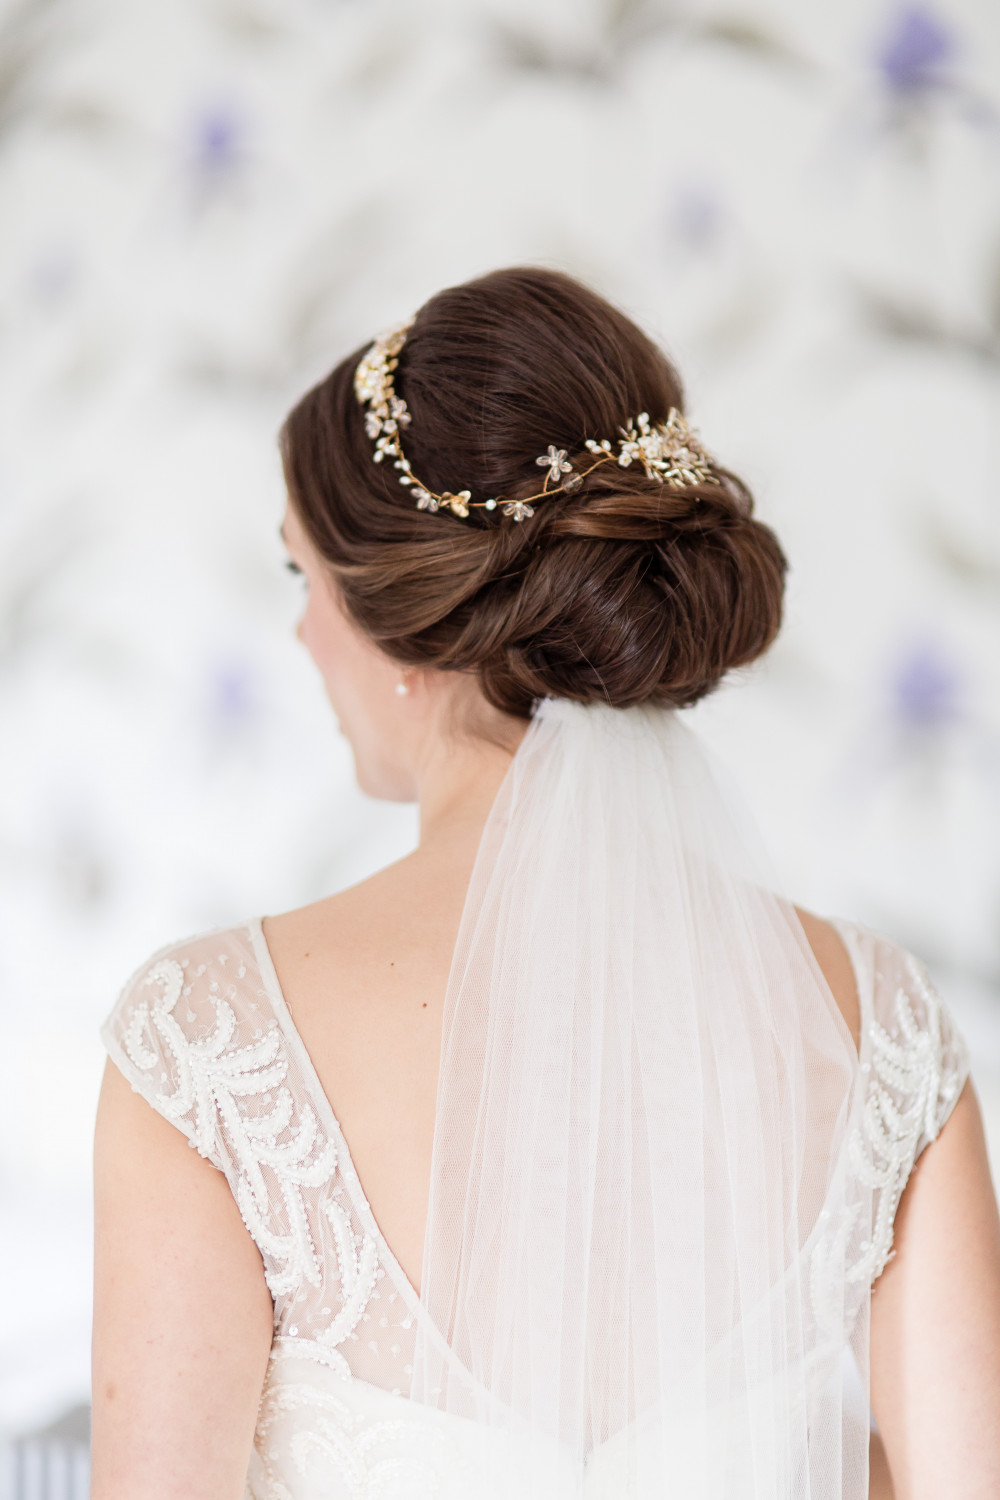 - Make Me Bridal Artist: Aridal Makeup & Hair. #updo #chignon #brunette #romantic #lowupdo